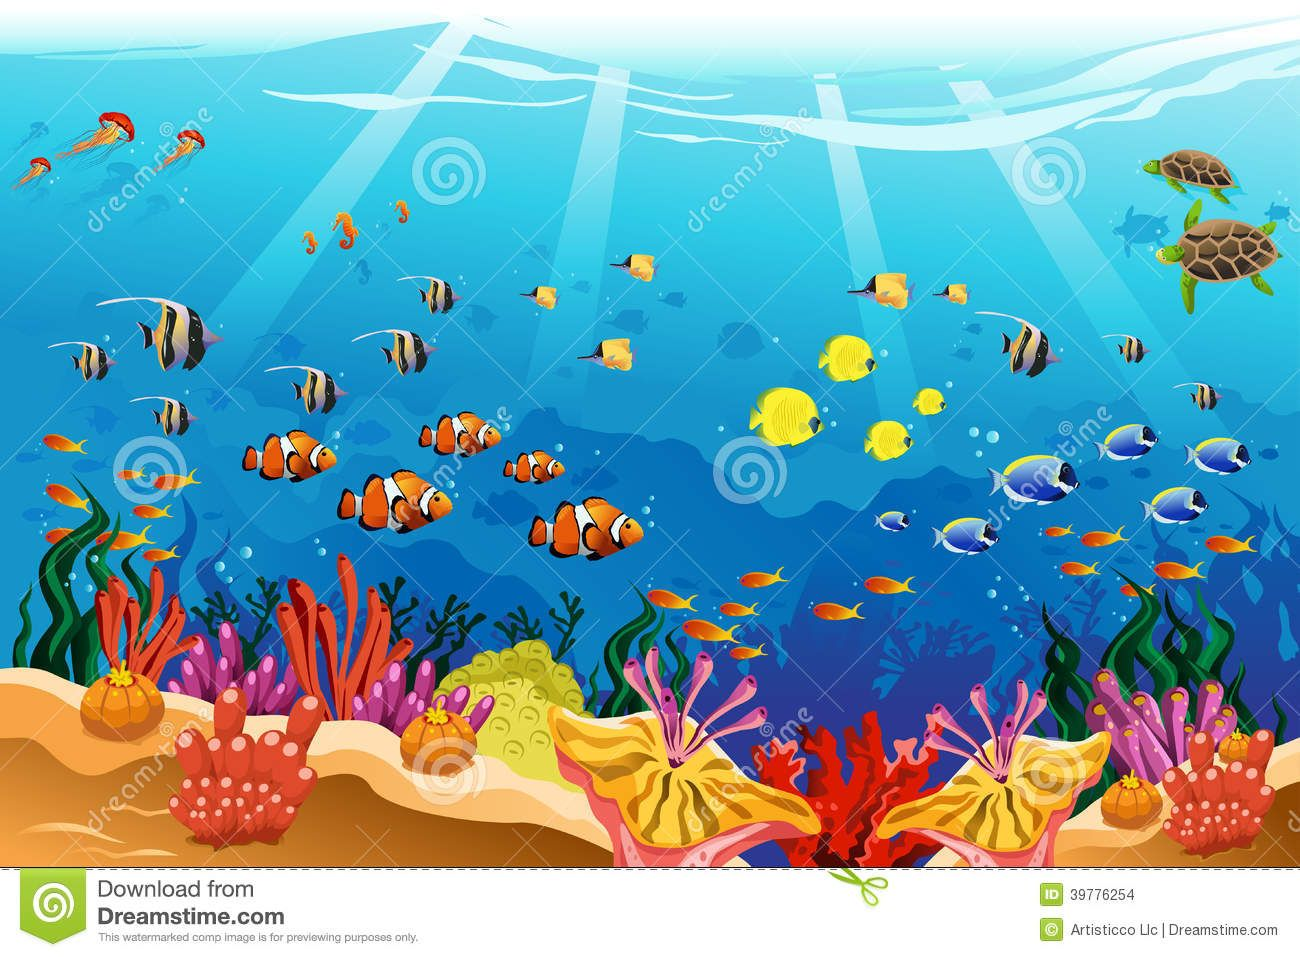 Underwater scenes to draw google search glass ideas for Fish scenery drawing